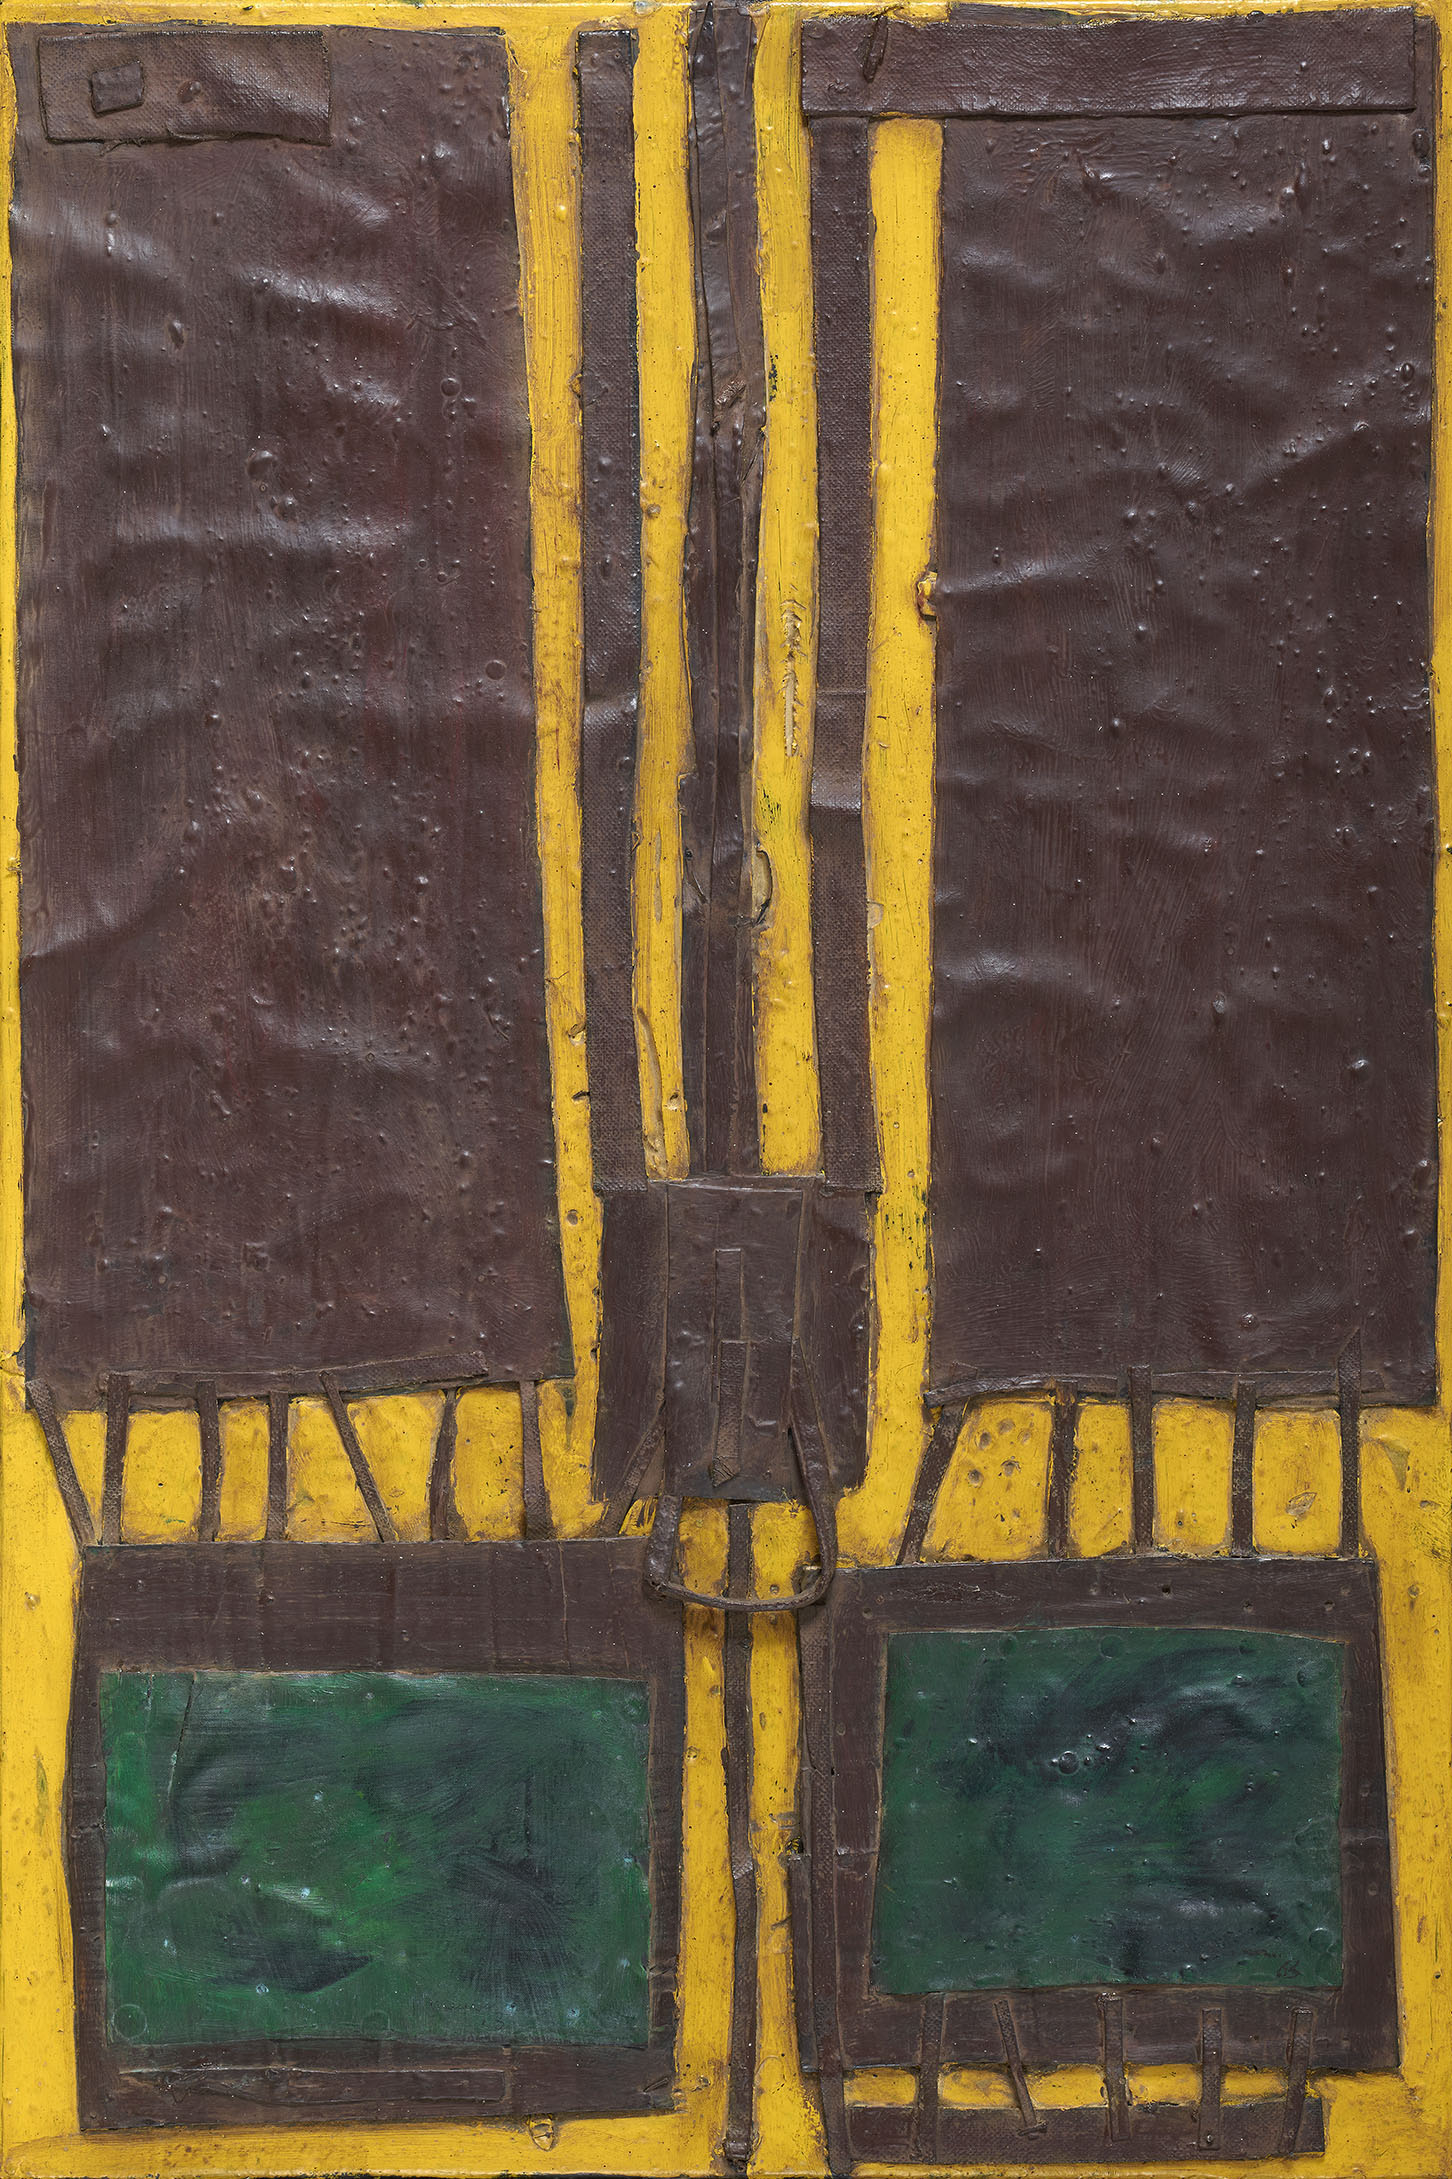 Door, 1963, mixed media on canvas, cm 80 x 54